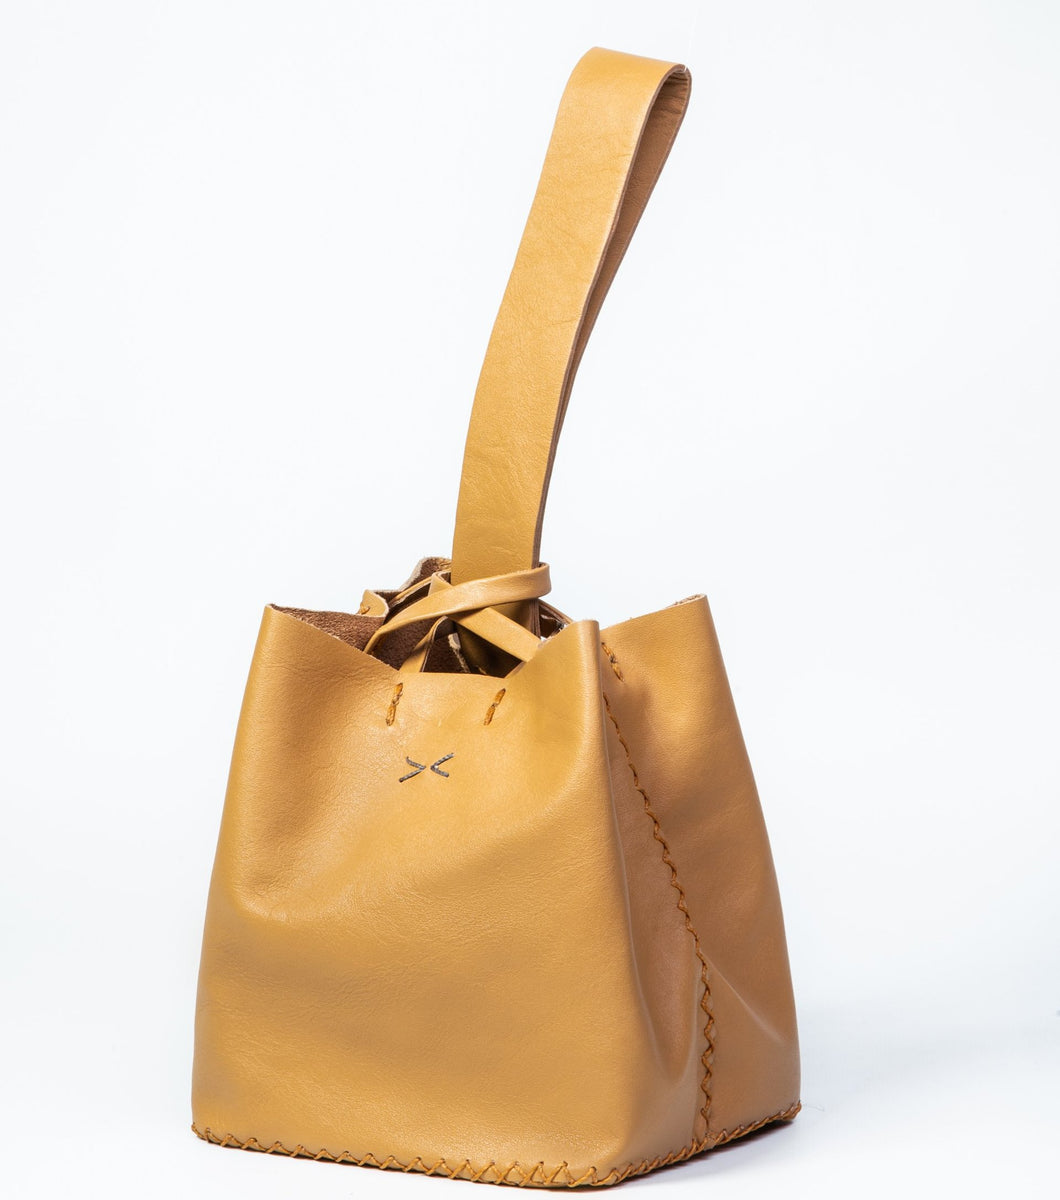 soho bag | light caramel leather